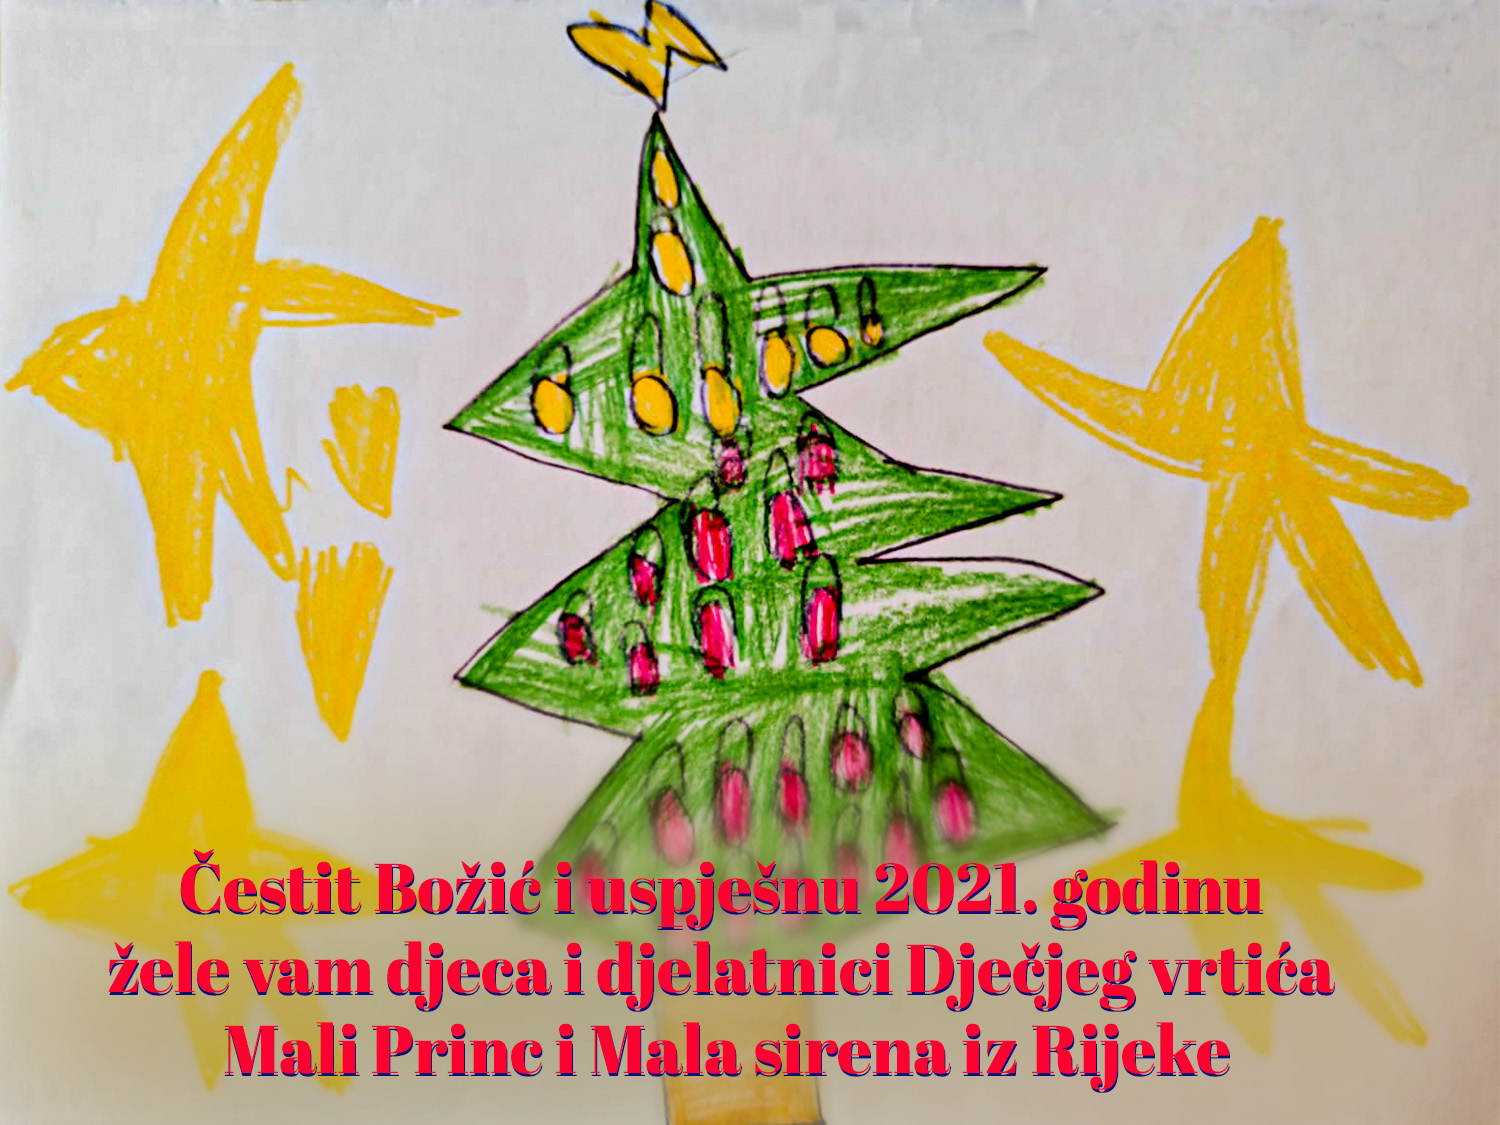 bozic2021_copy.jpg